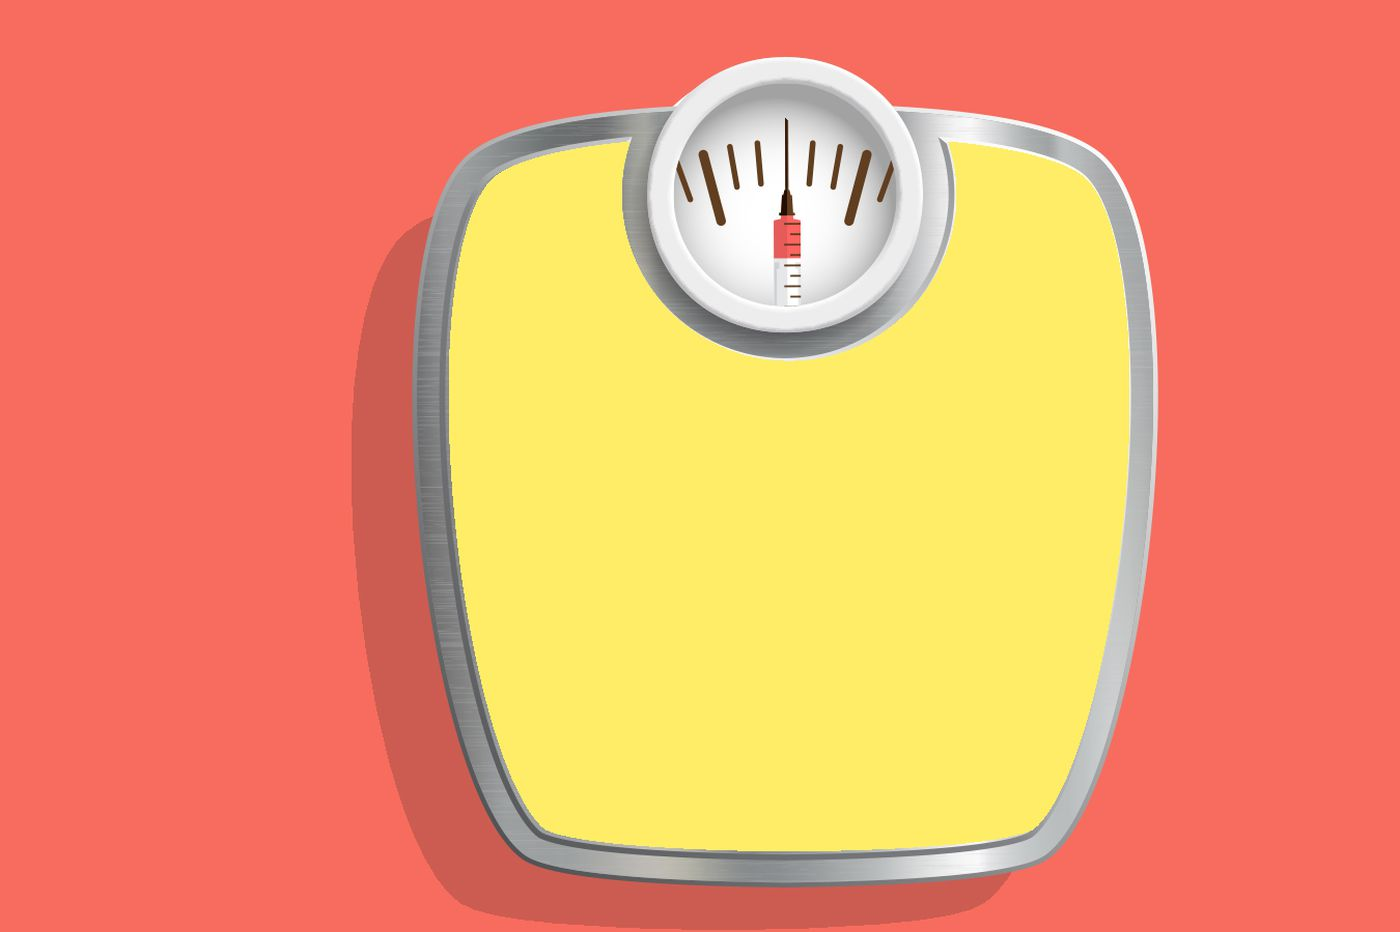 America's obesity epidemic threatens effectiveness of any COVID-19 vaccine